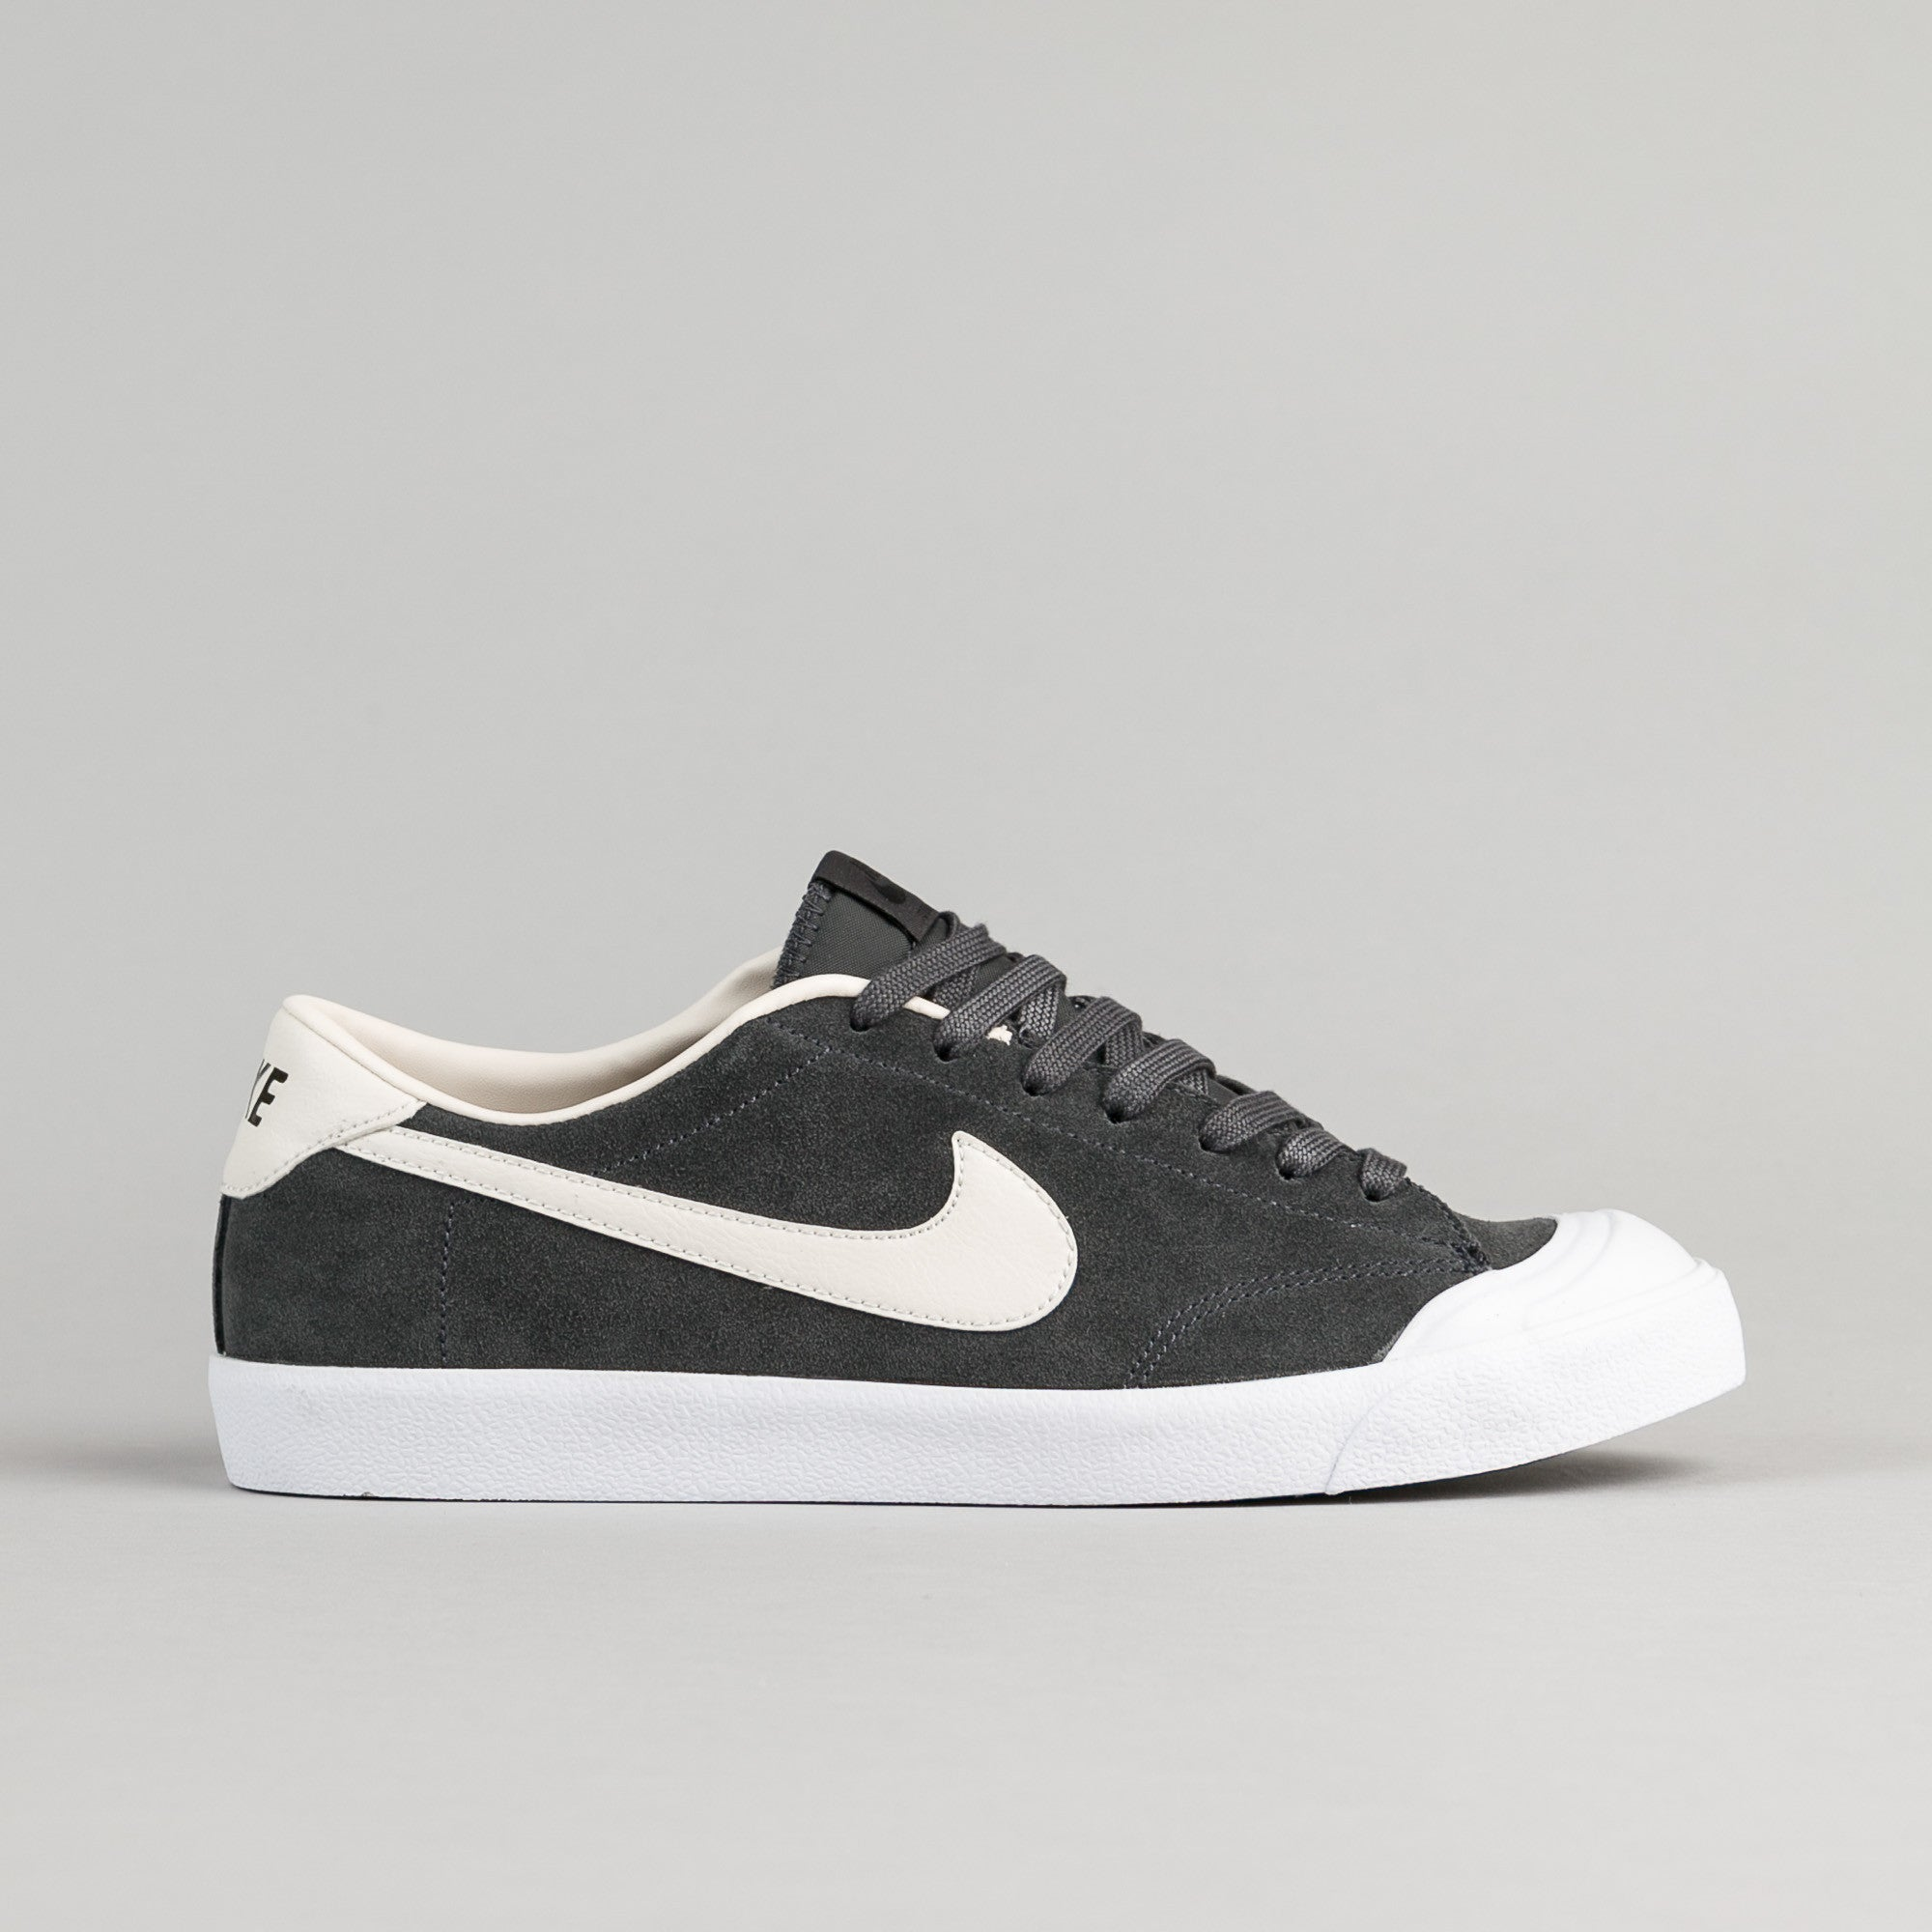 2018 sneakers factory outlets new products Nike SB All Court CK Shoes - Anthracite / Phantom - White ...